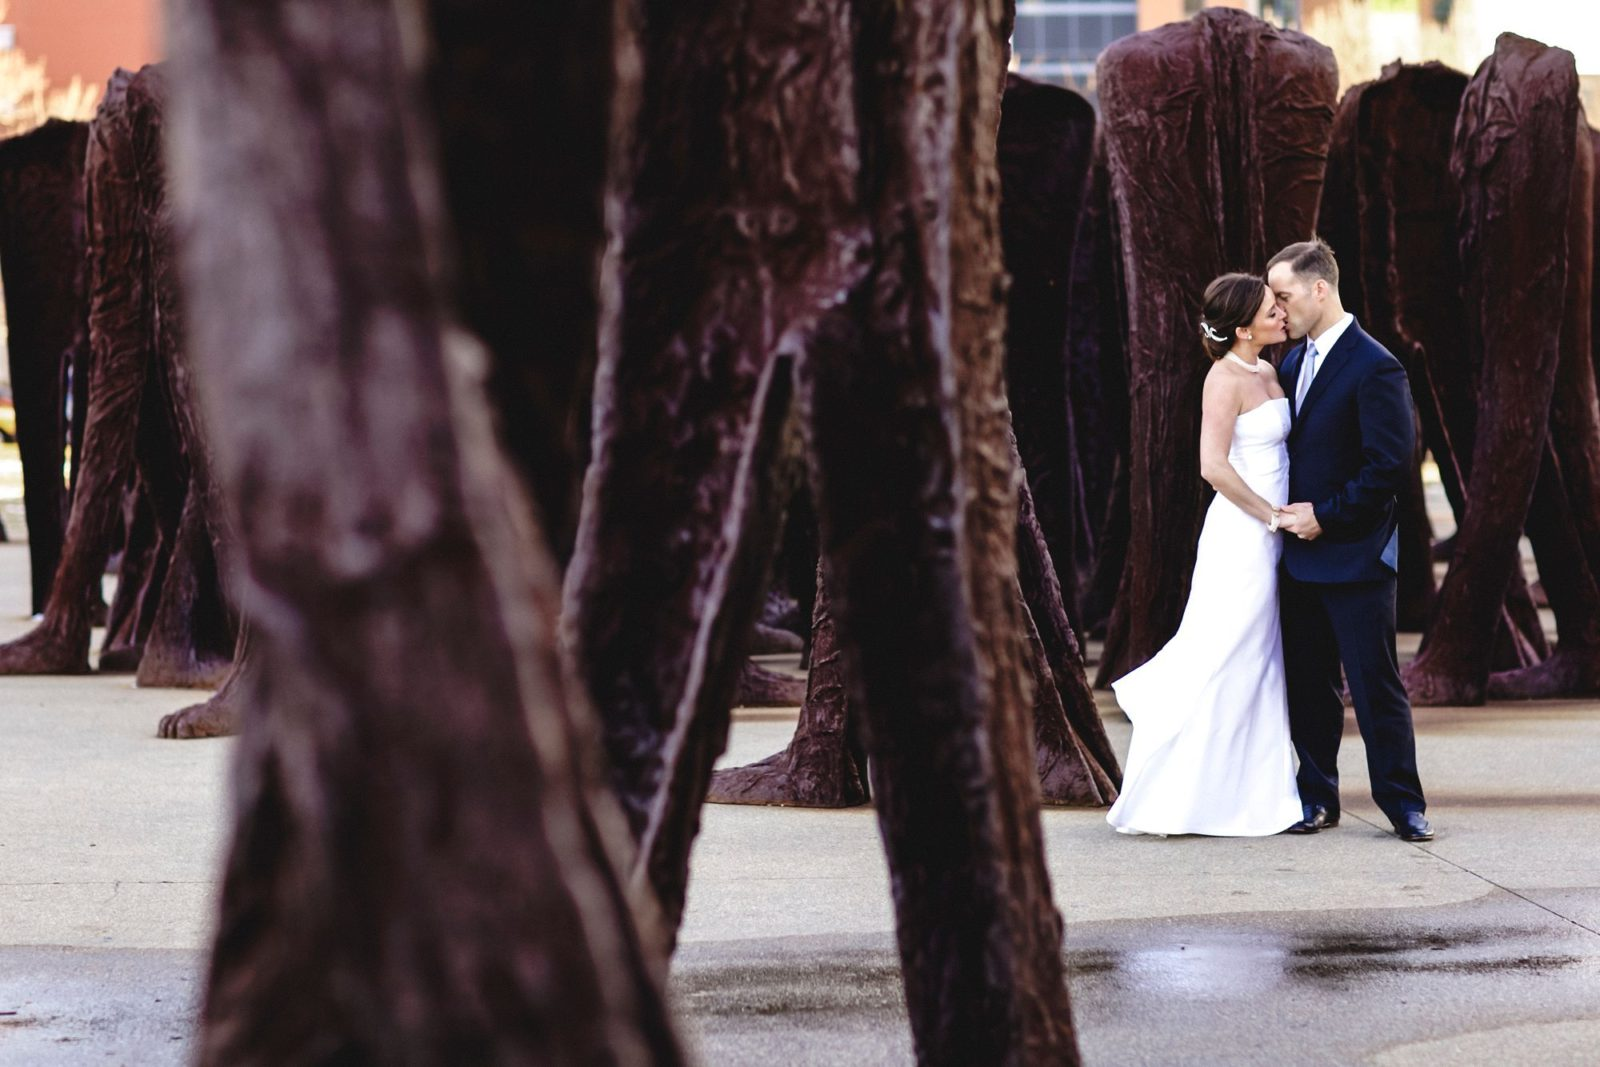 Kiss - Wedding Photography by Maggie Rife Ponce.